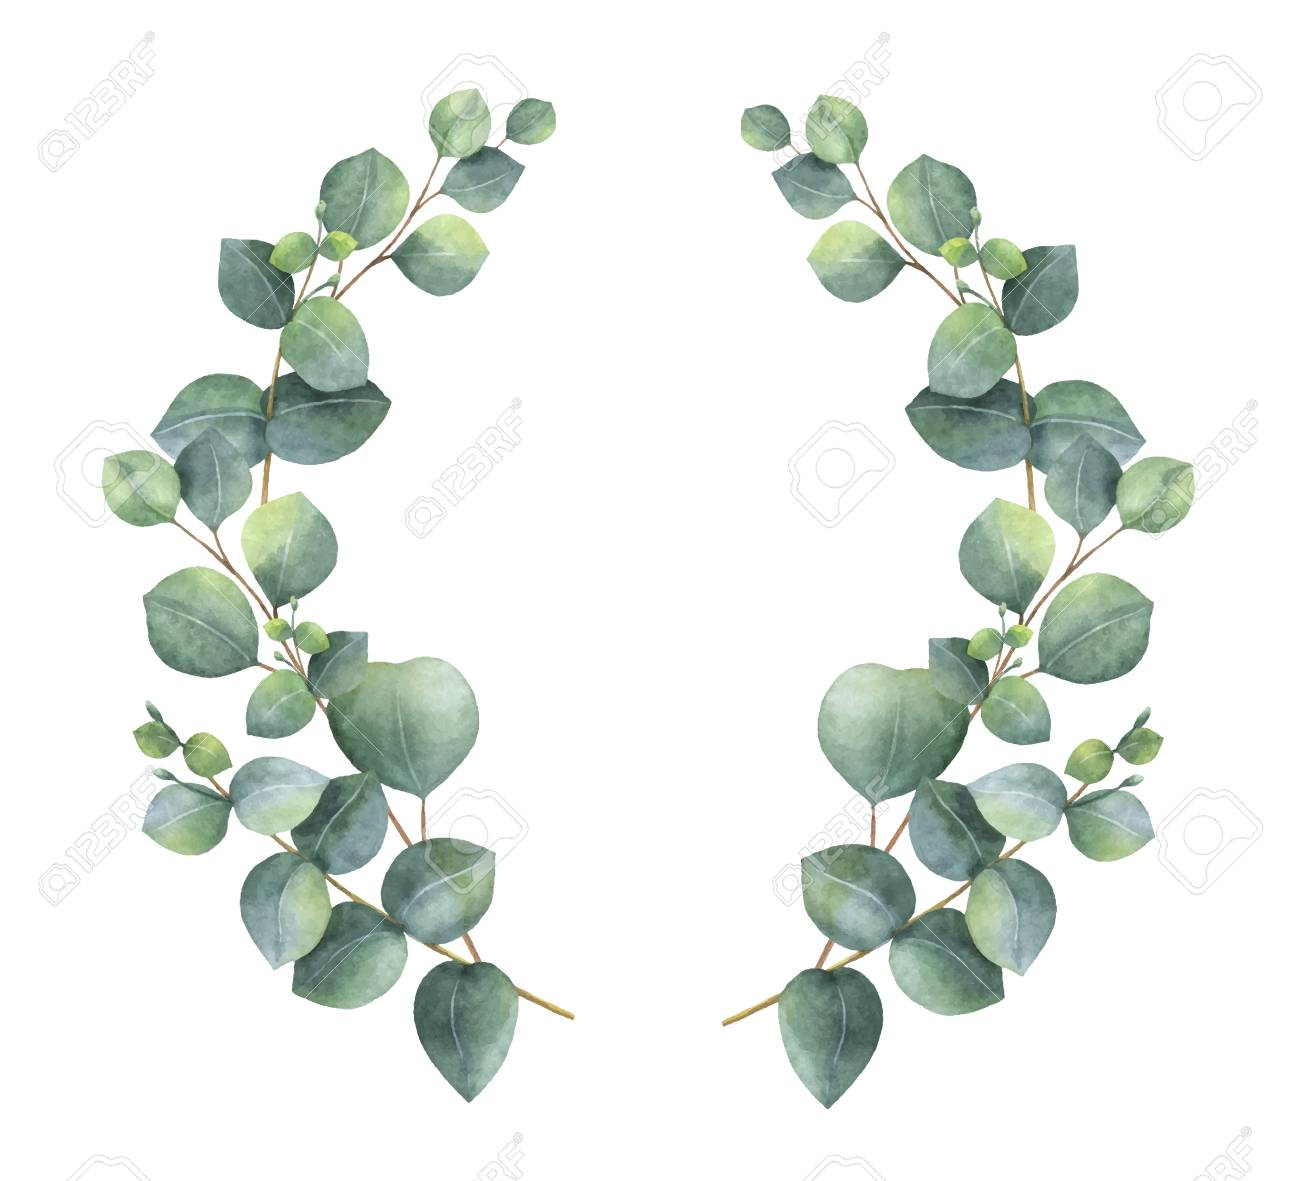 Watercolor vector wreath with silver dollar eucalyptus leaves and branches. Healing Herbs for cards, wedding invitation, awards, victories and success. Summer flowers with space for your text. - 92237719